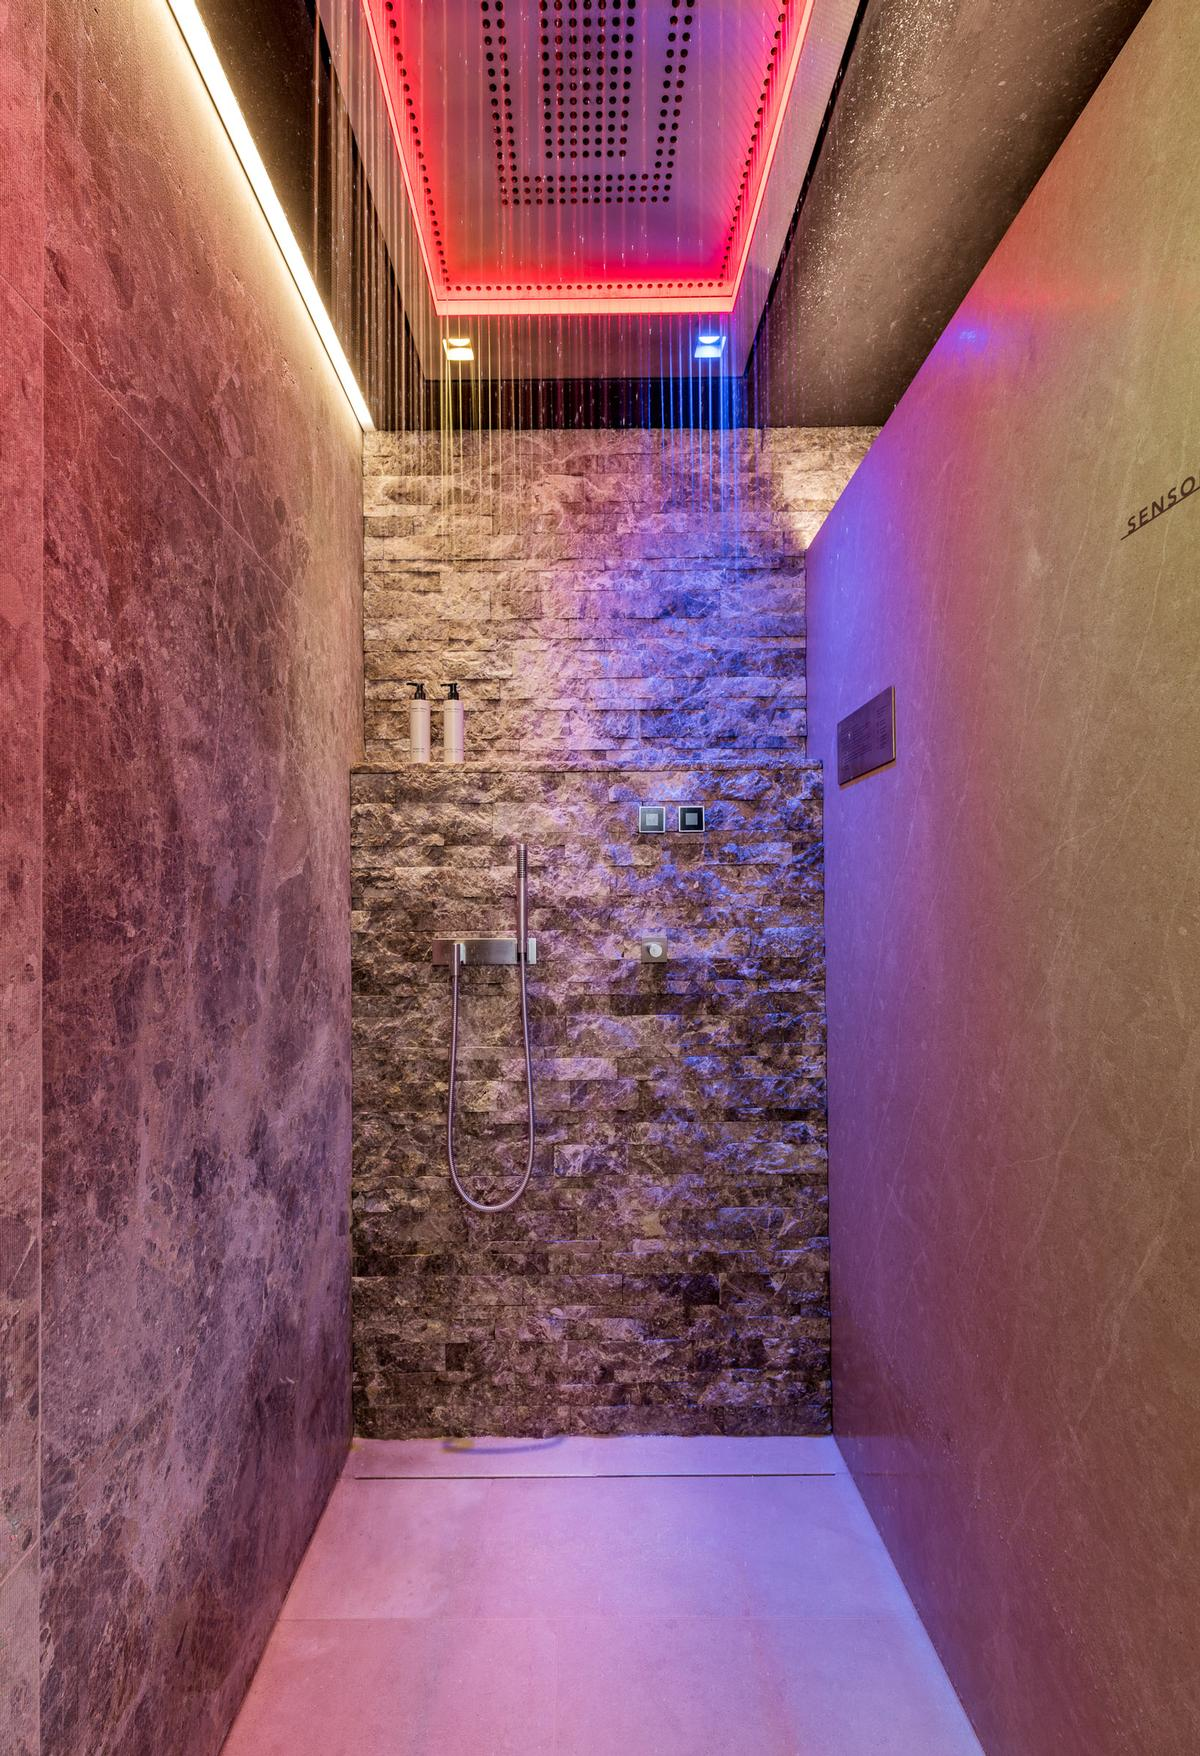 Hydrotherapy facilities cater for water massages, chromotherapy, aromatherapy and multi-sensory water experiences